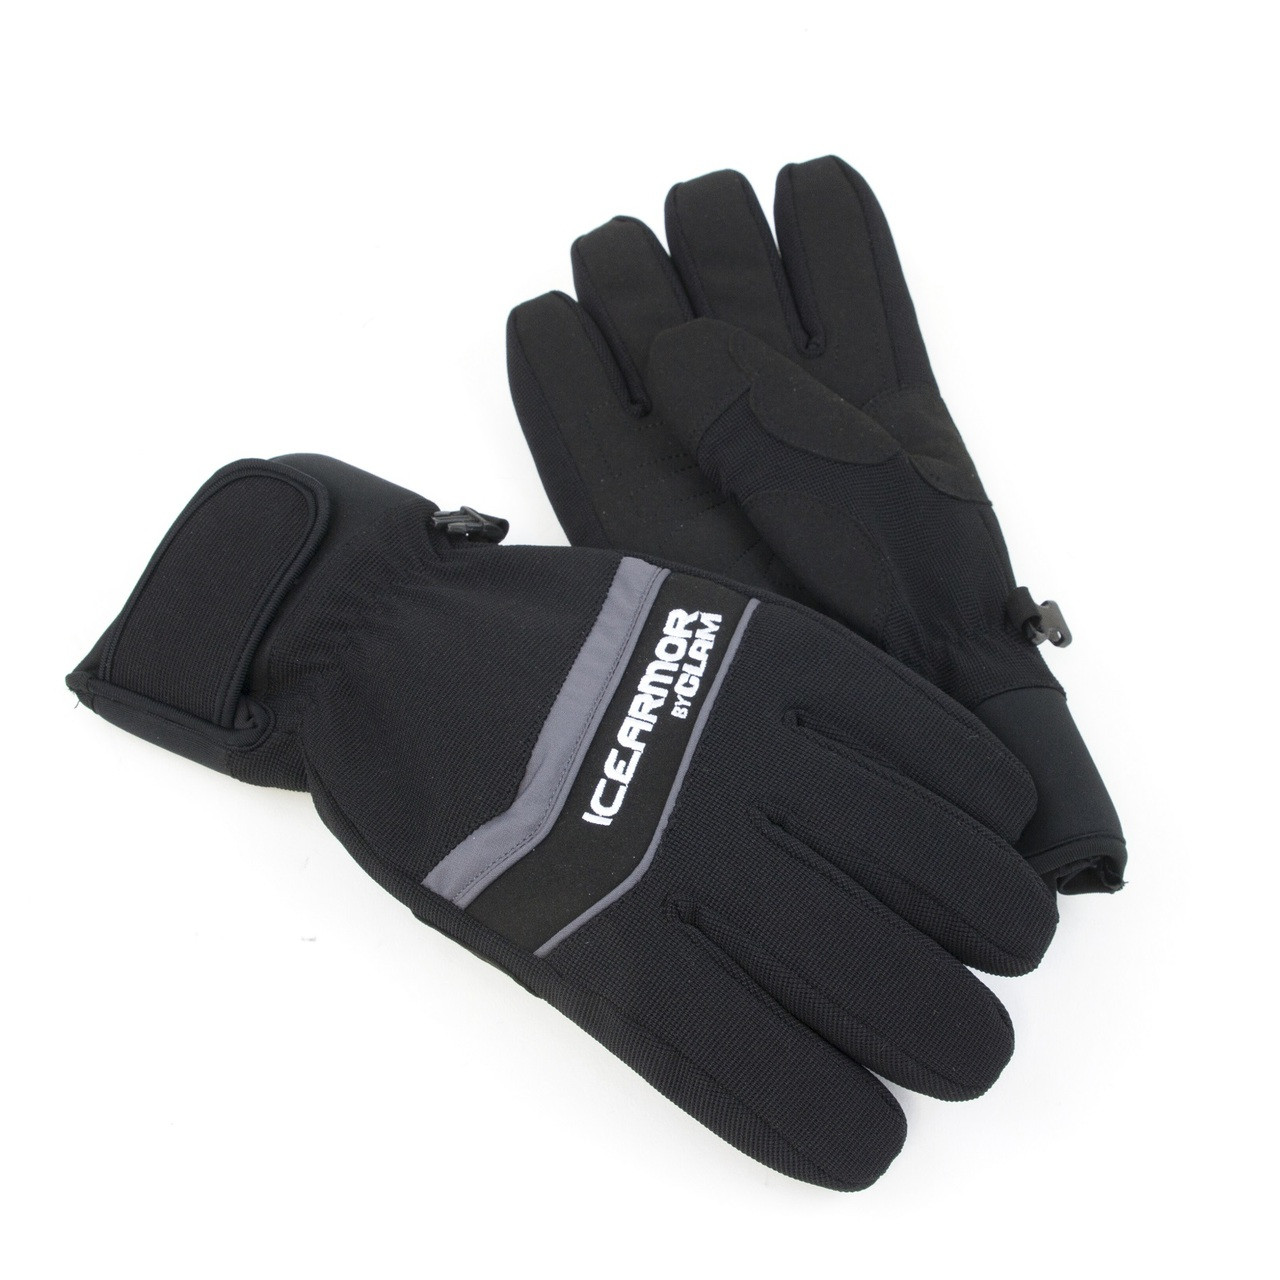 Clam Outdoors IceArmor Edge Ice Fishing Gloves